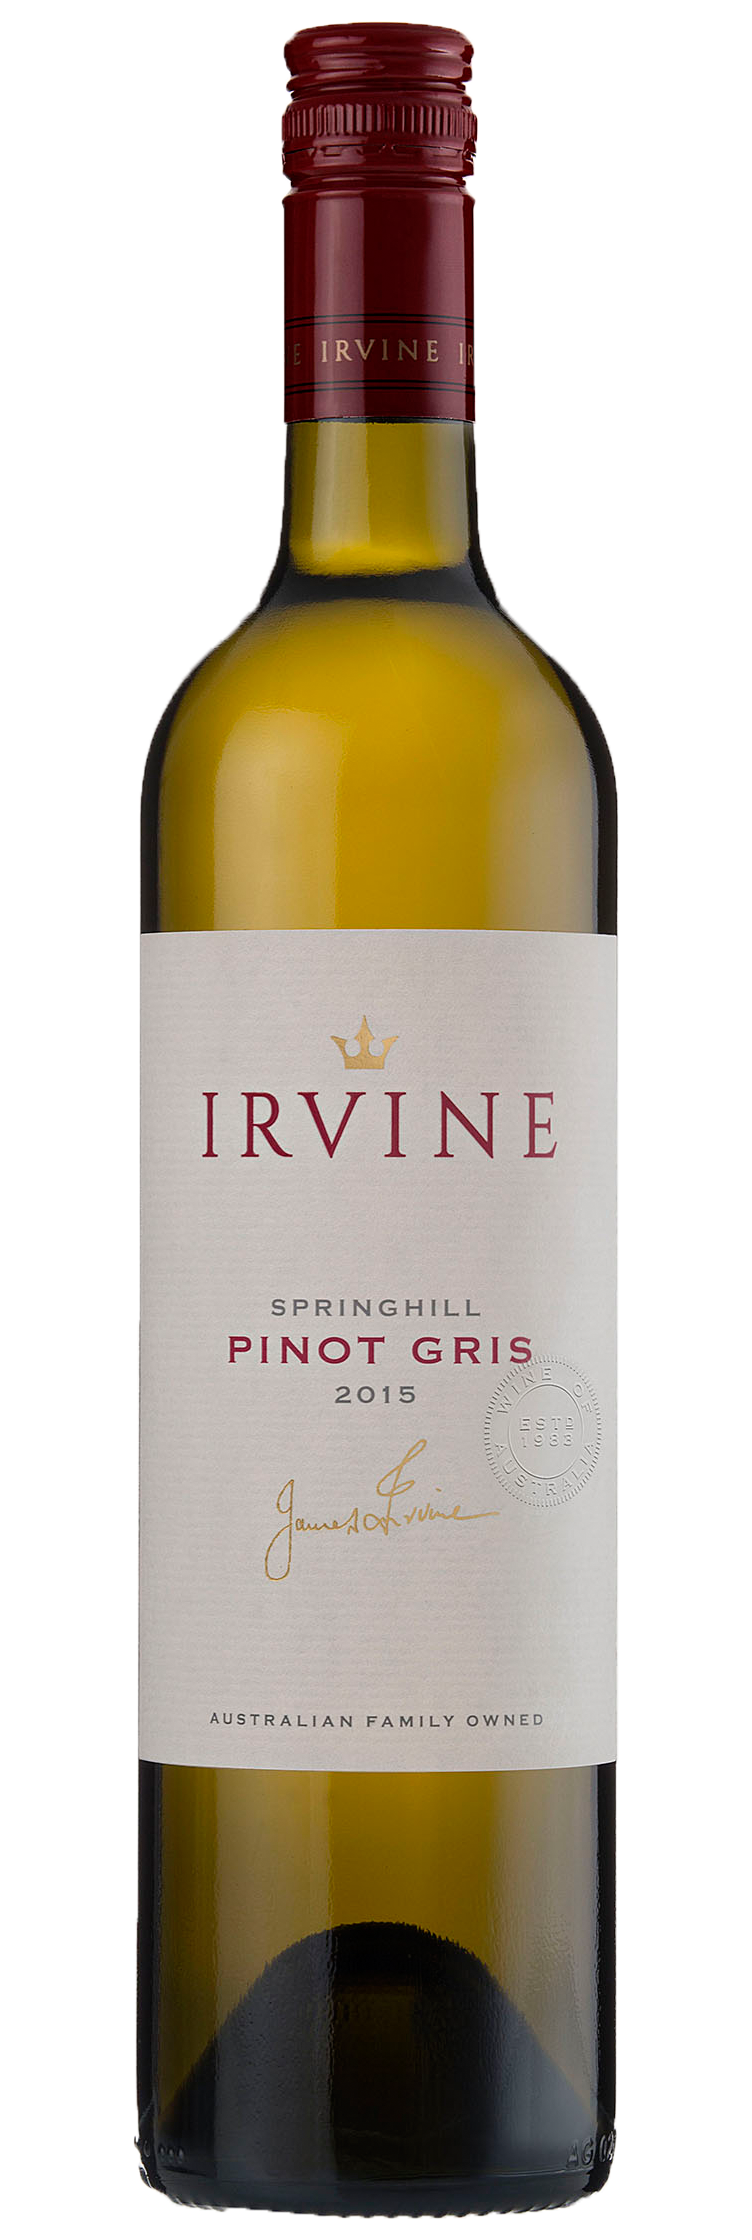 Springhill Pinot Gris